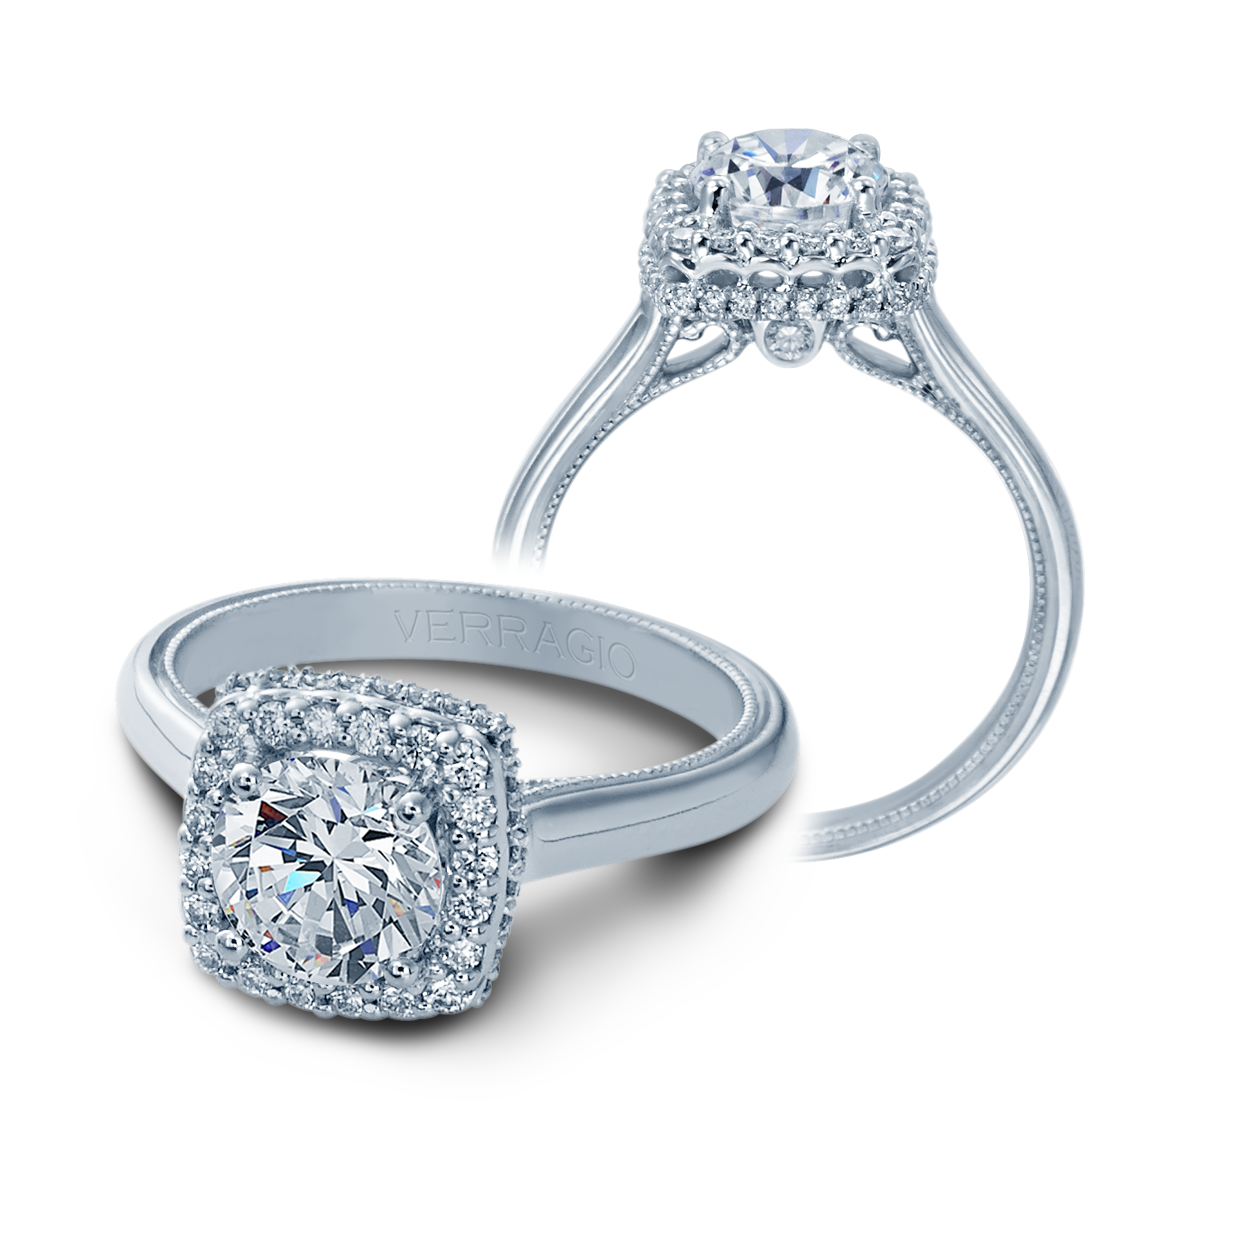 Verragio Classic-927-CU7 Engagement Ring